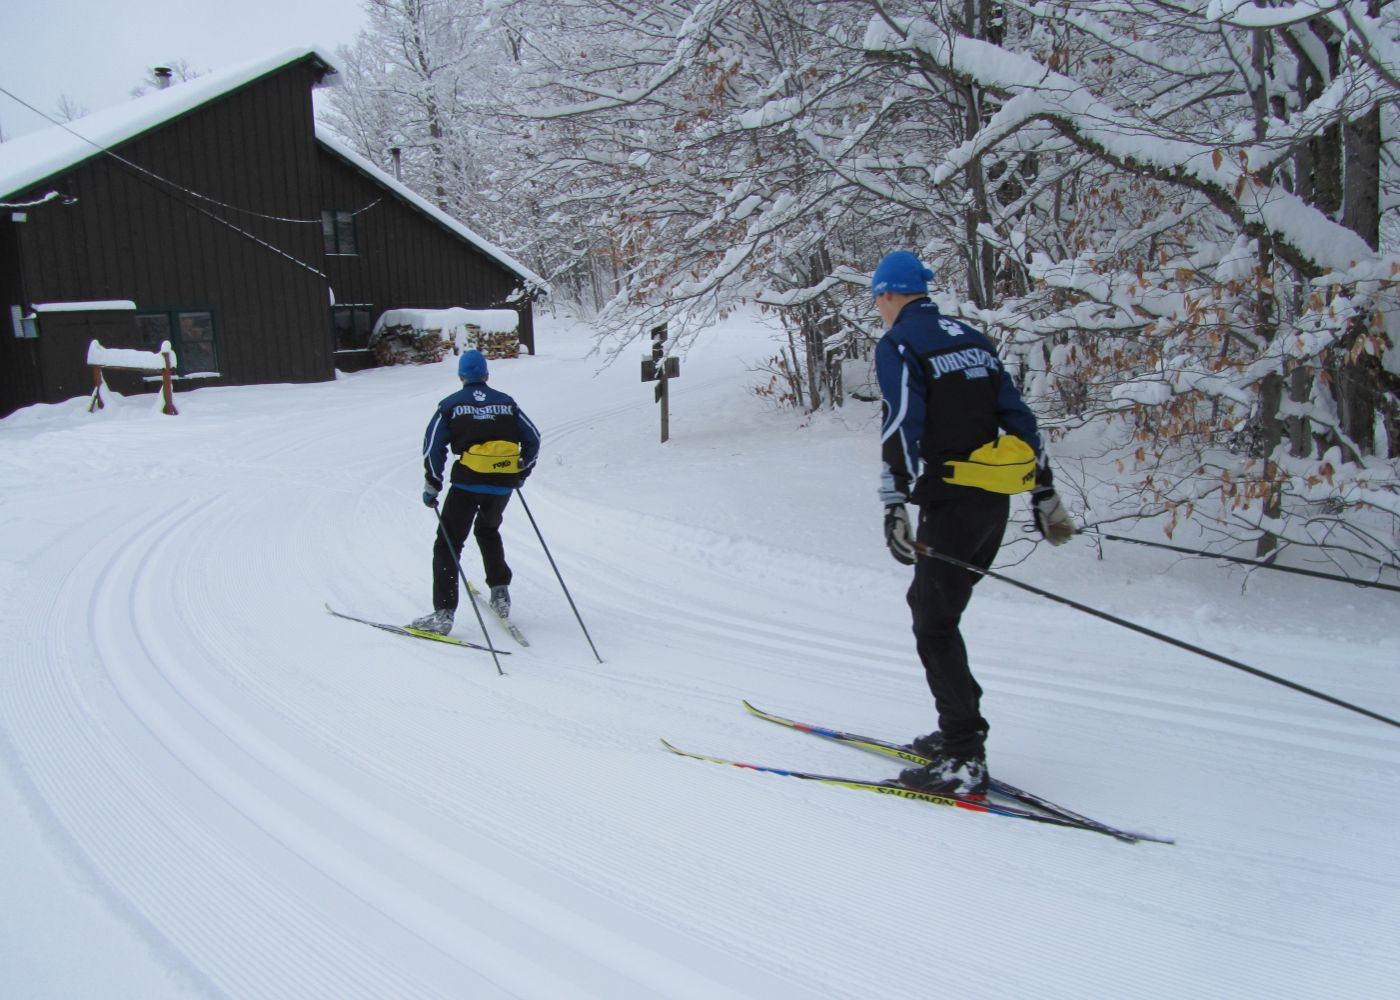 Cross Country Skiing In The Adirondacks Sierra Club Outings